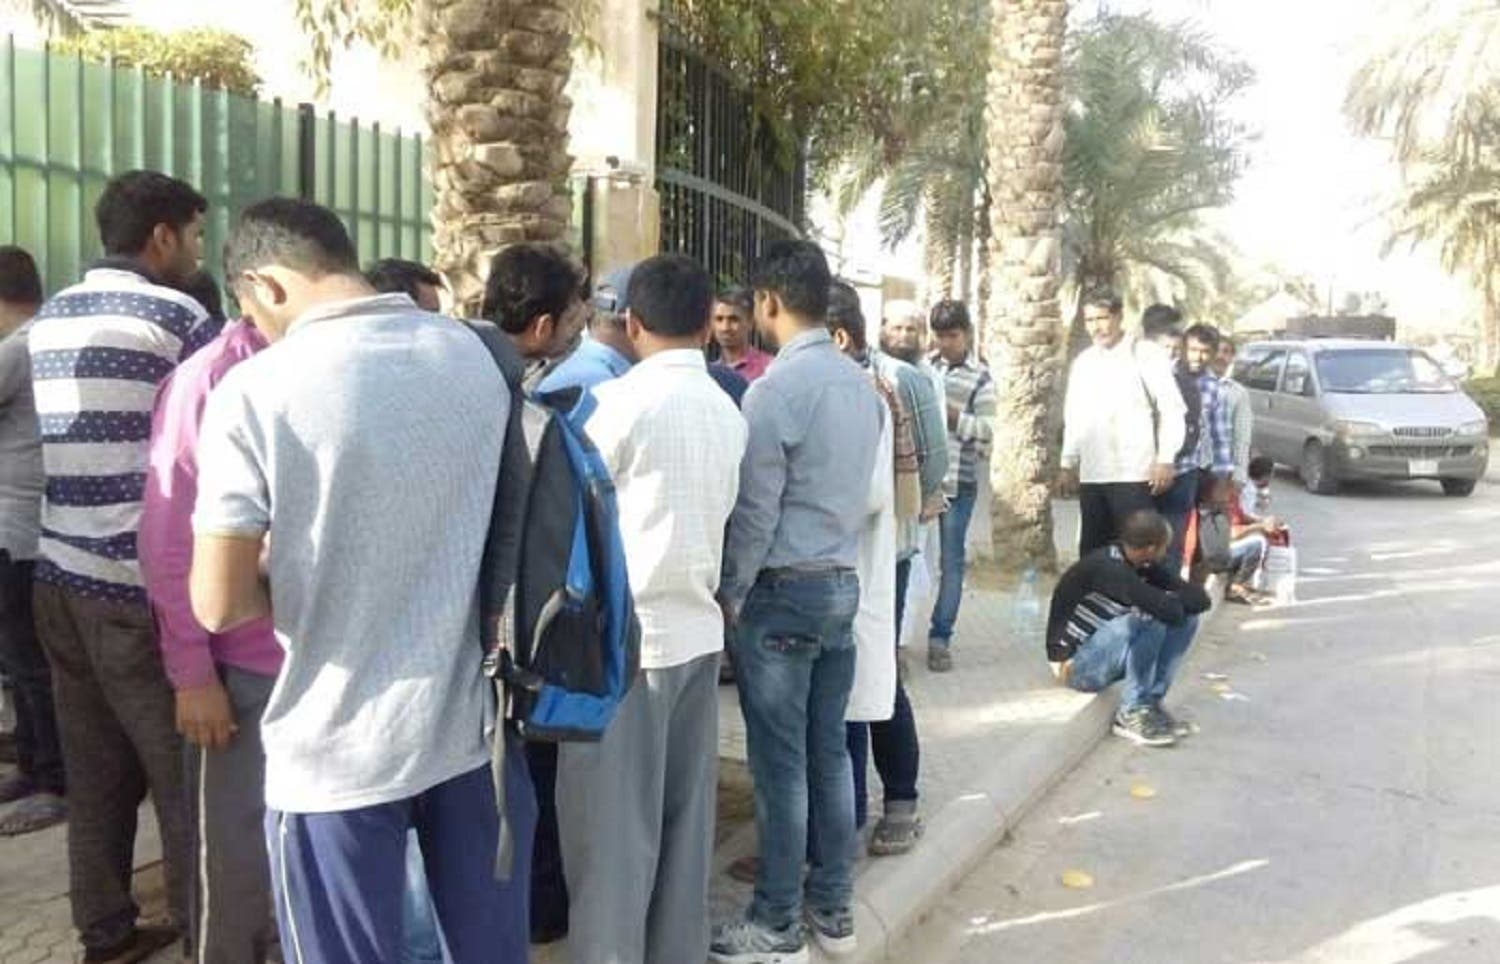 Indian Embassy officials in Riyadh made elaborate arrangements to receive a large number of amnesty seekers. (Saudi Gazette)